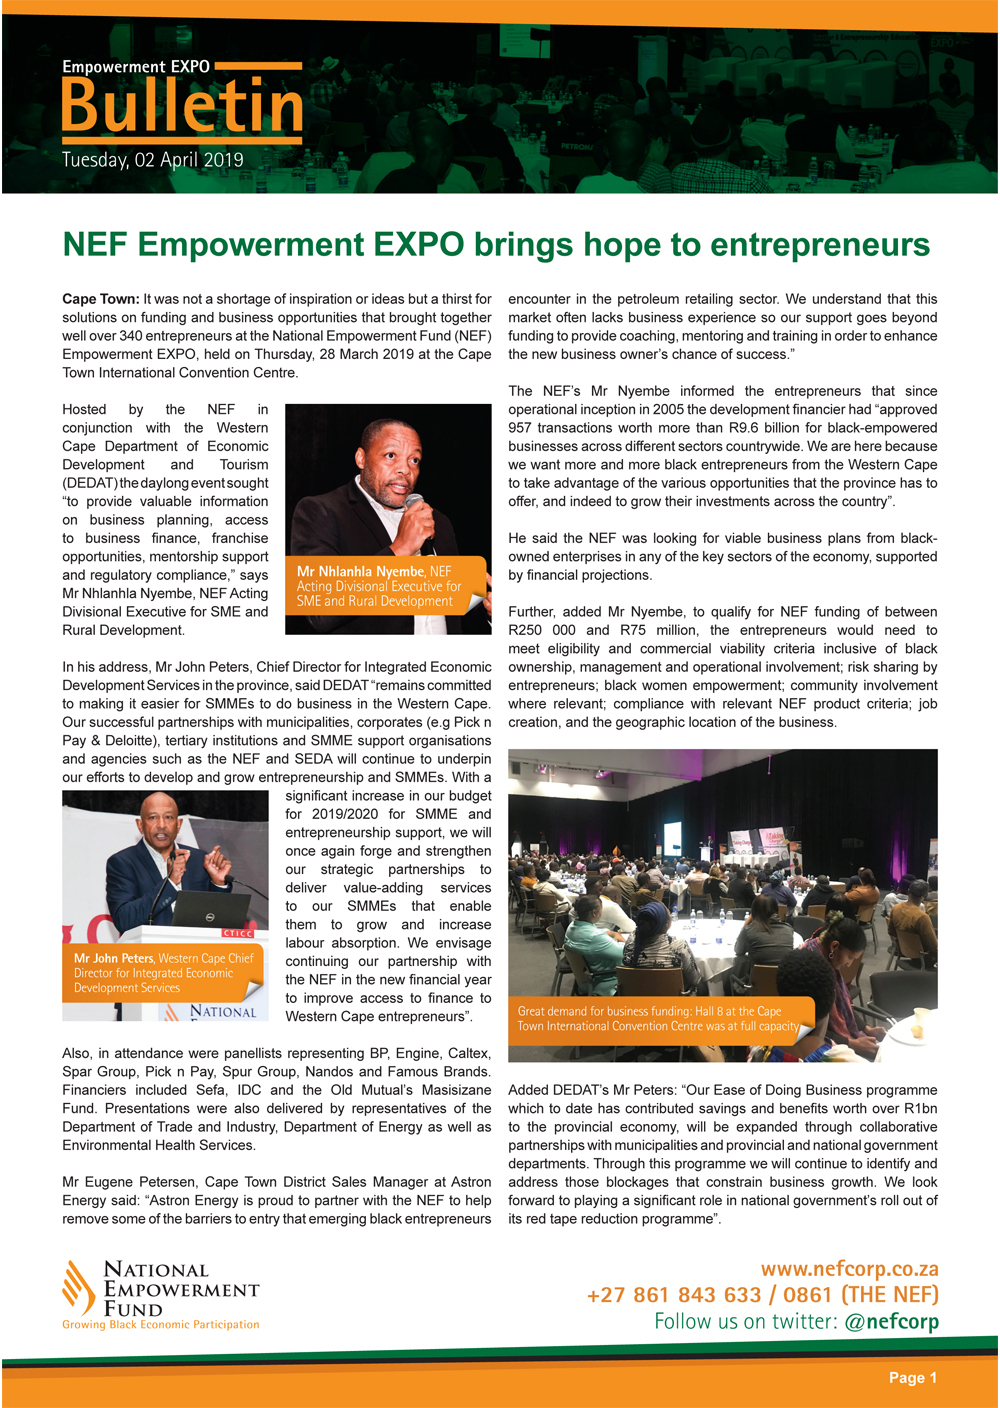 NEF Empowerment EXPO Brings Hope To Entrepreneurs